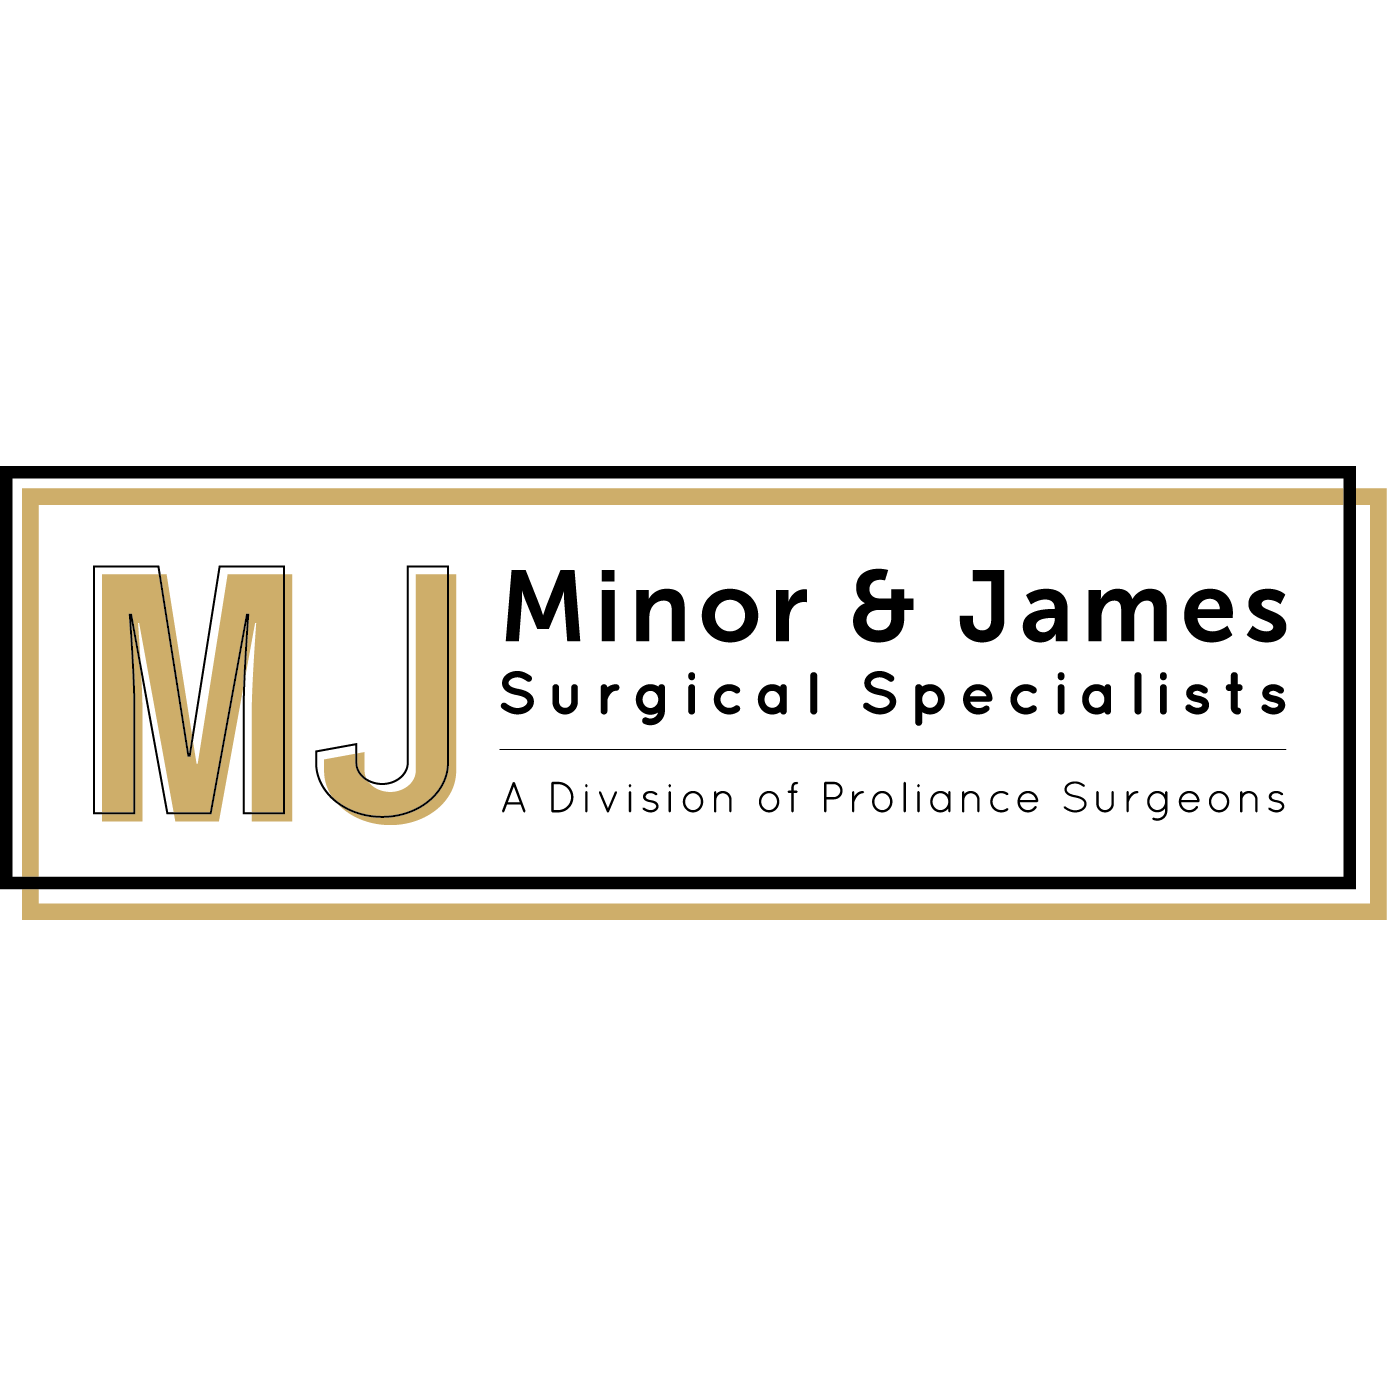 Minor & James Surgical Specialists